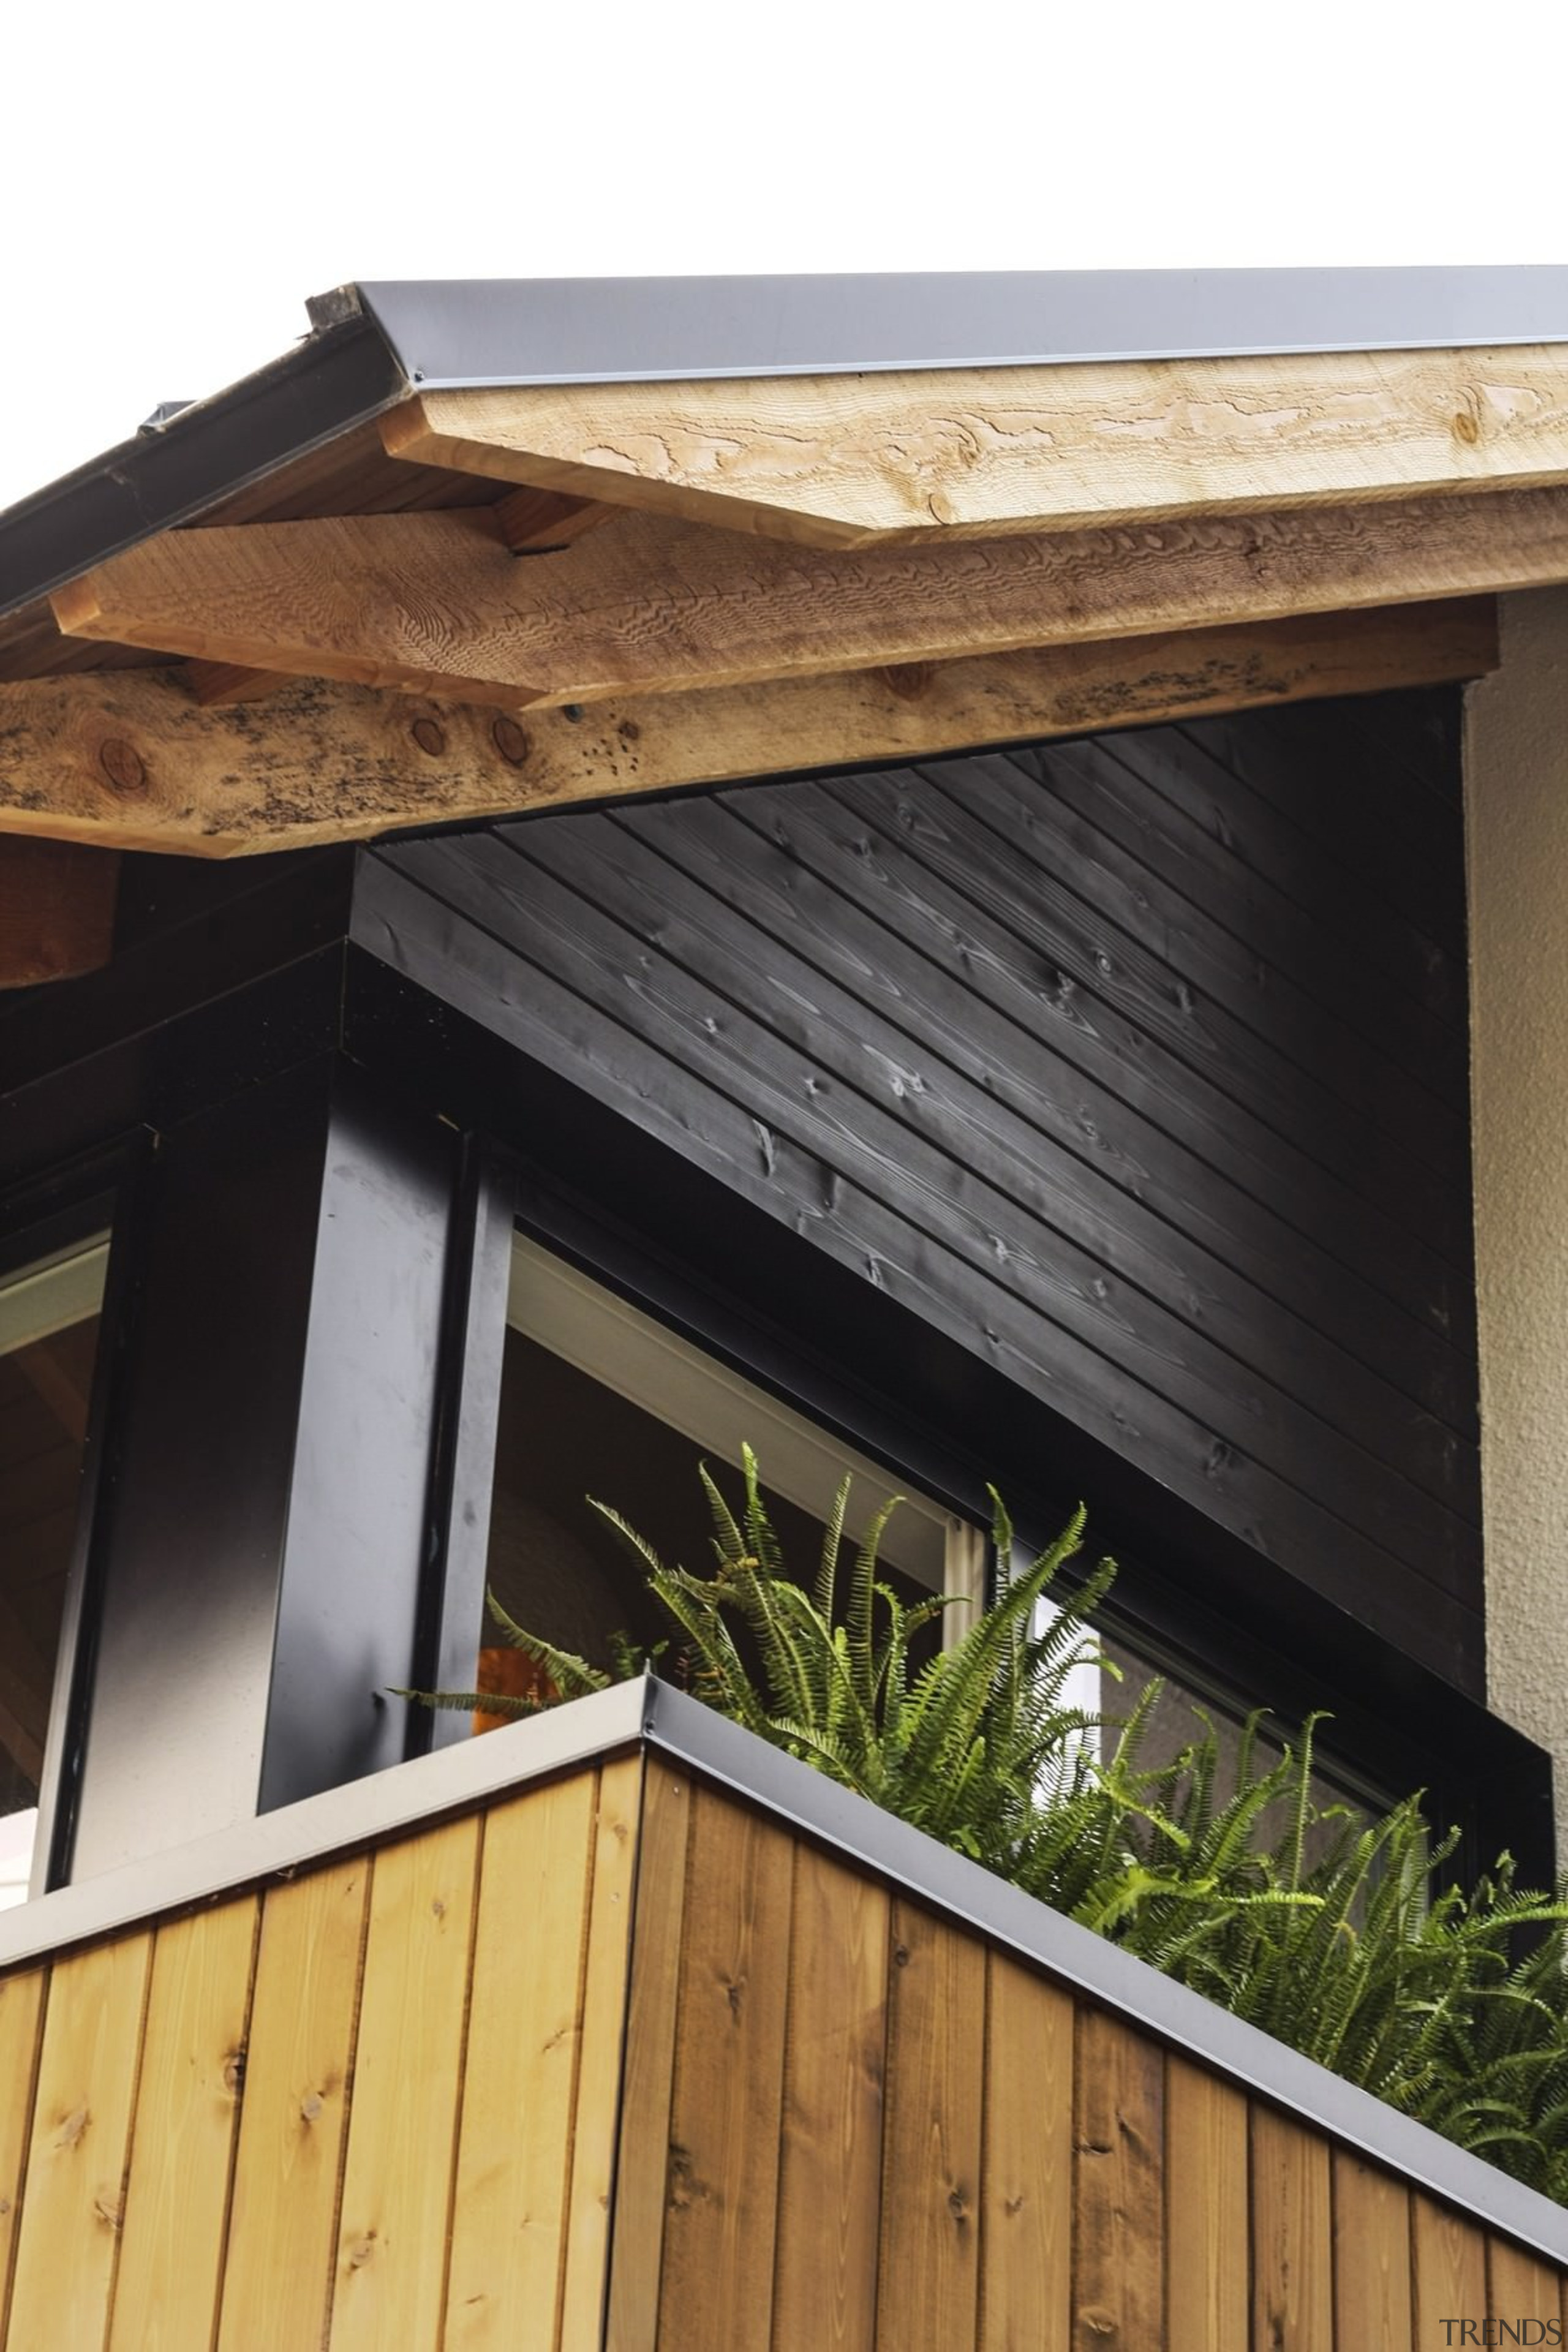 Raw timber supports add character - Raw timber daylighting, facade, house, roof, siding, wood, black